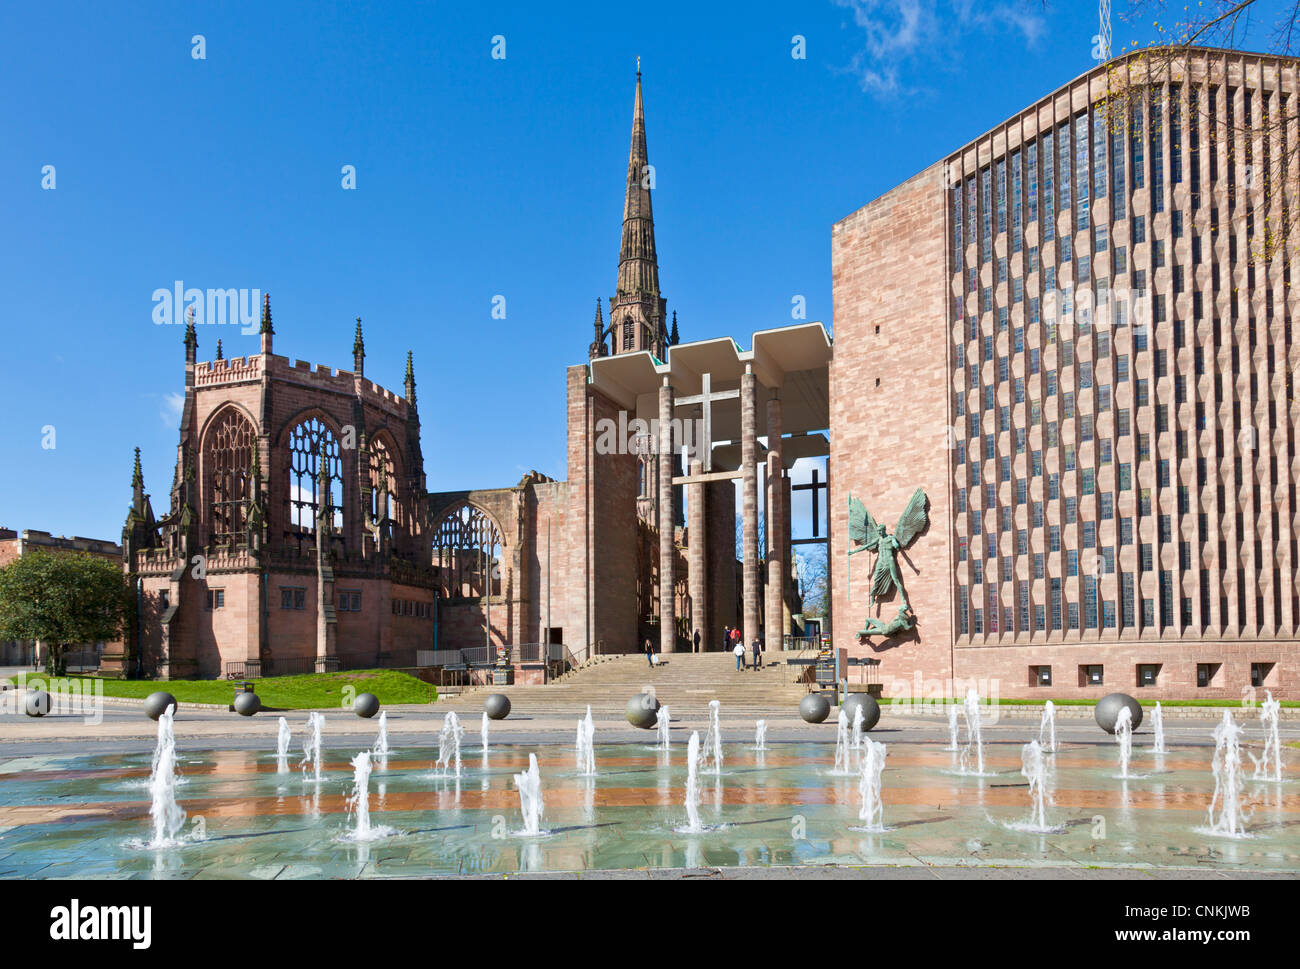 Coventry old cathedral shell and new modern cathedral West midlands England UK GB EU Europe - Stock Image